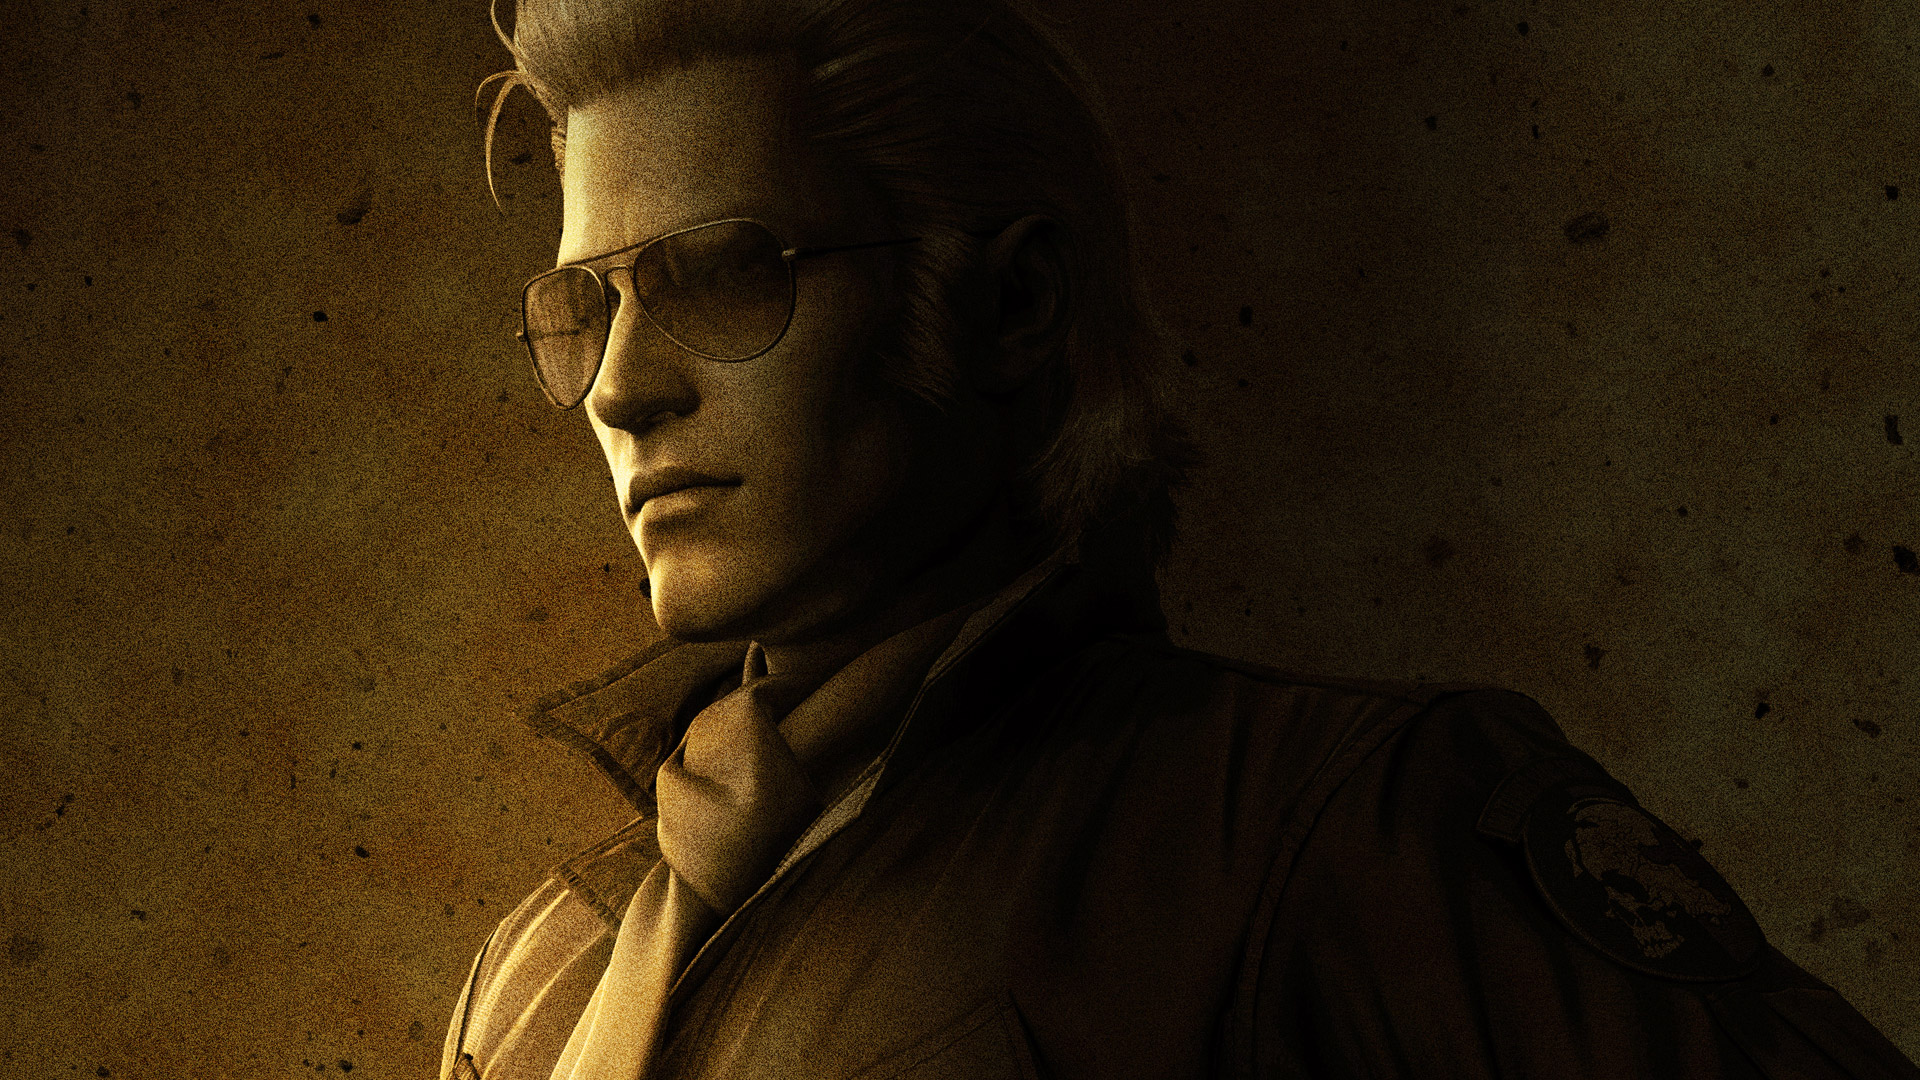 Metal Gear Solid: Peace Walker Wallpaper in 1920x1080